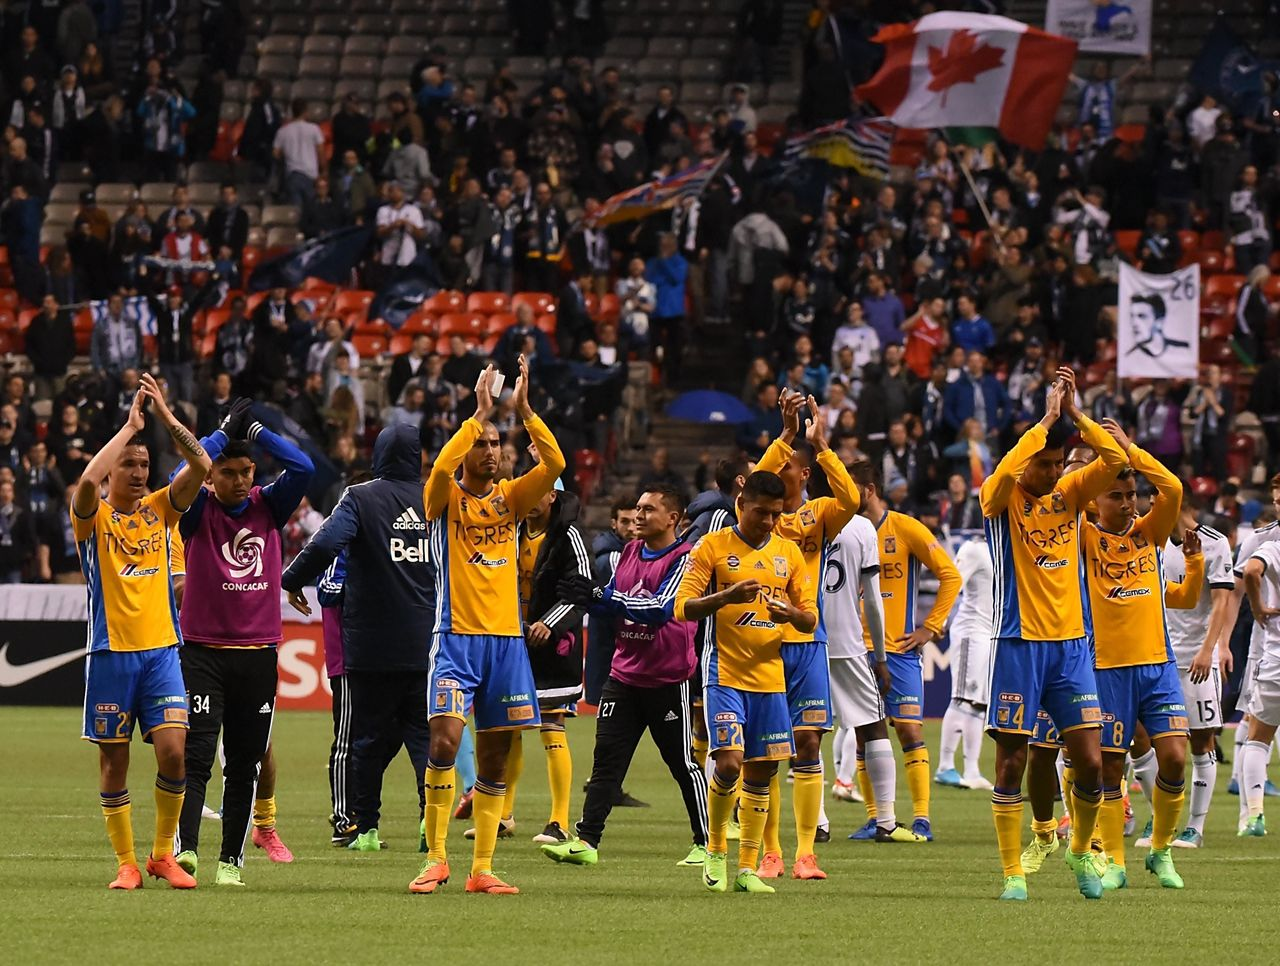 Cropped 2017 04 06t044021z 1806624617 nocid rtrmadp 3 mls concacaf champions league tigres uanl at vancouver white caps fc